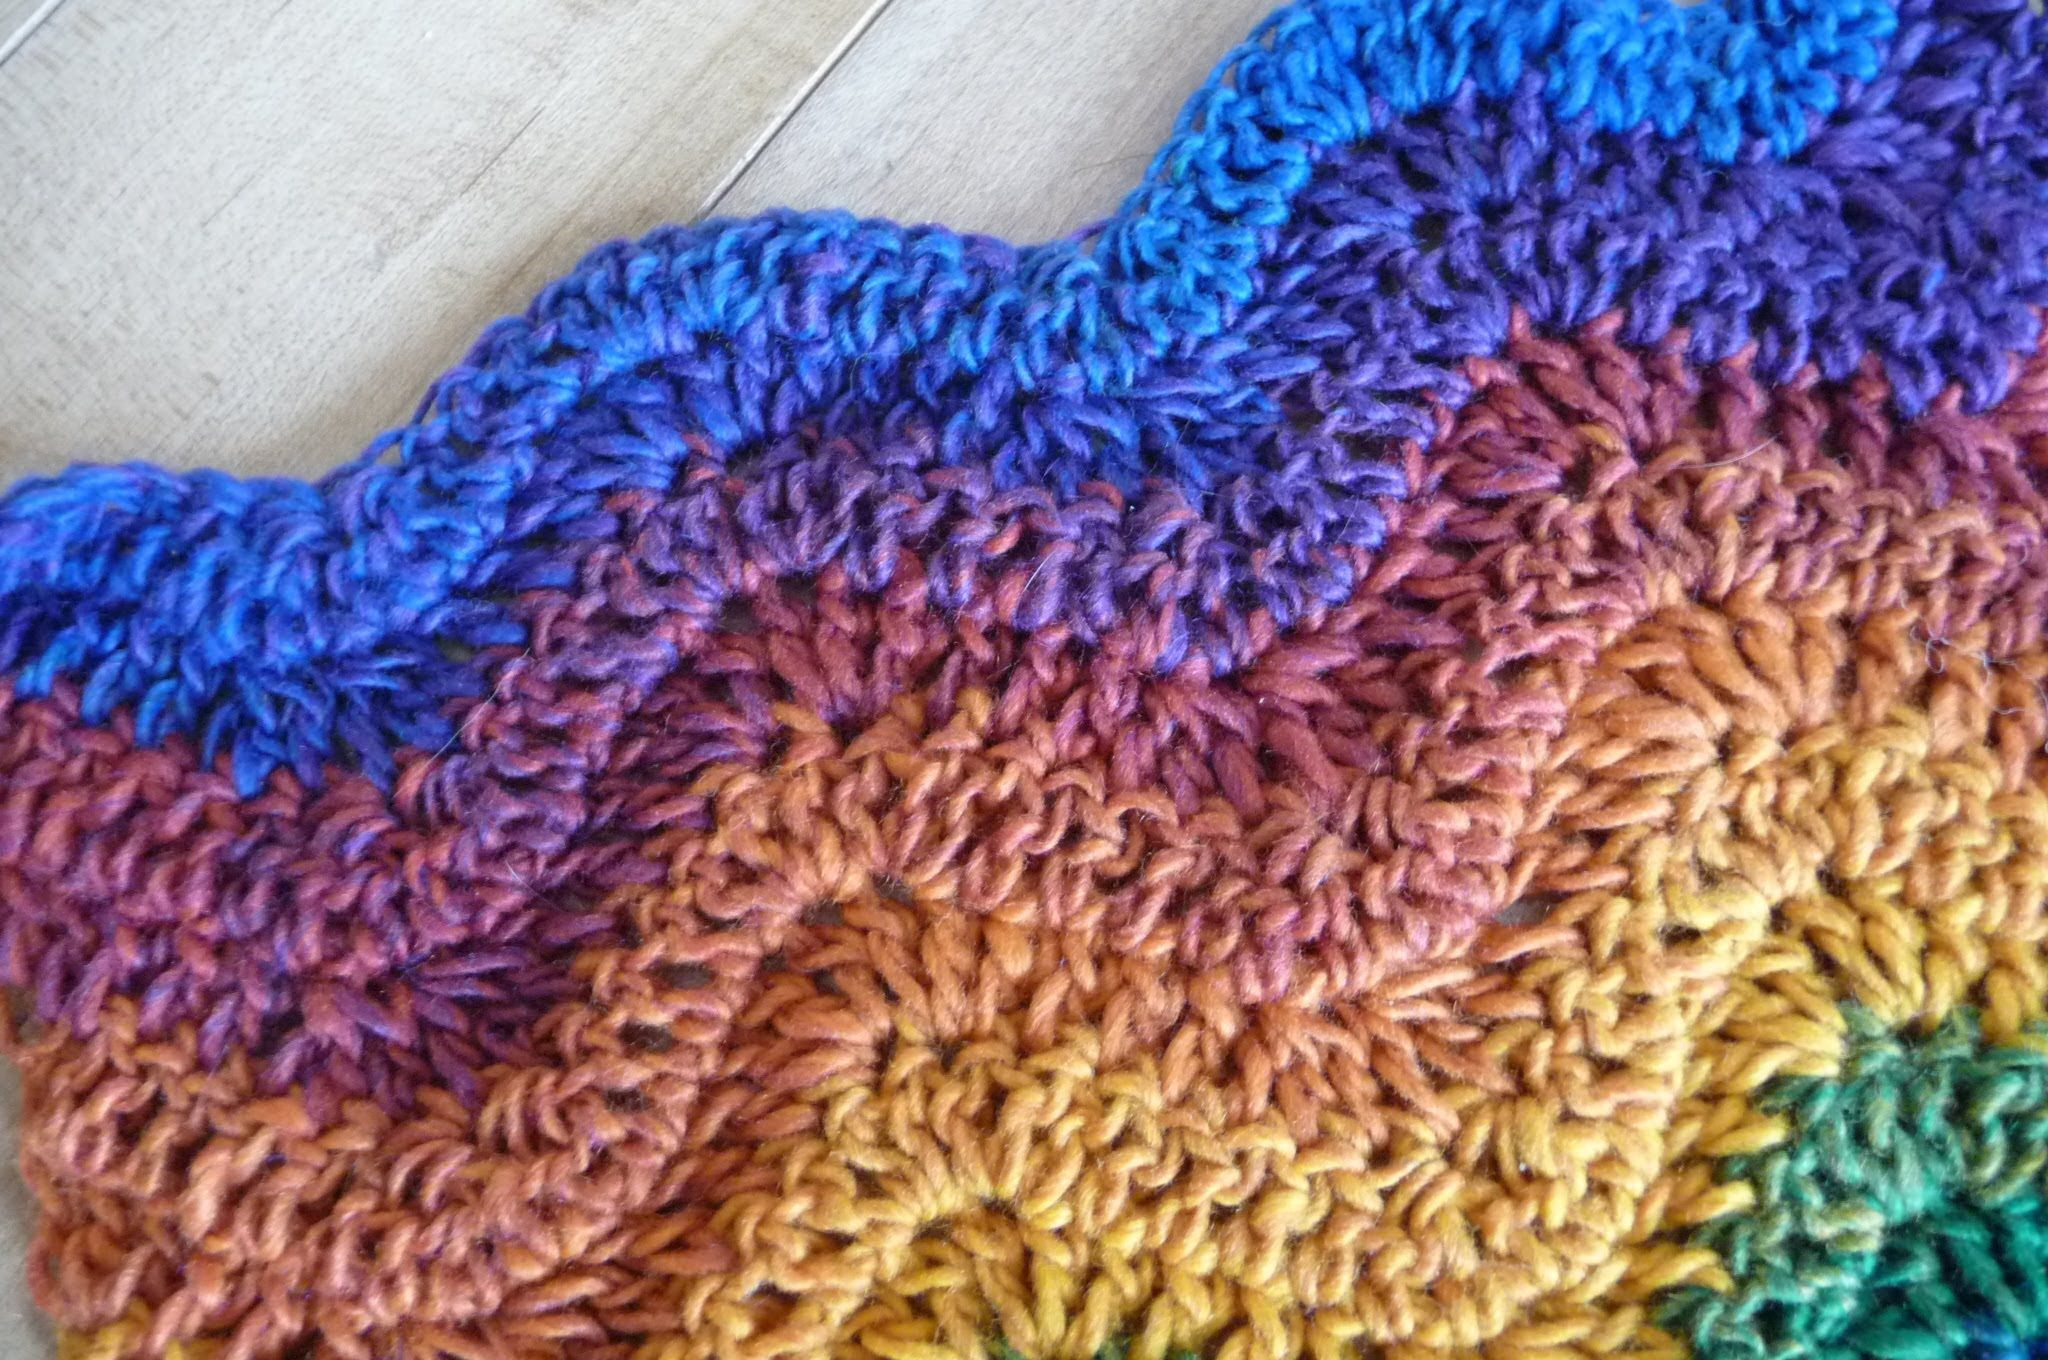 How To Crochet Ripple Afghan aka Wave or Ripple | Free Video ...